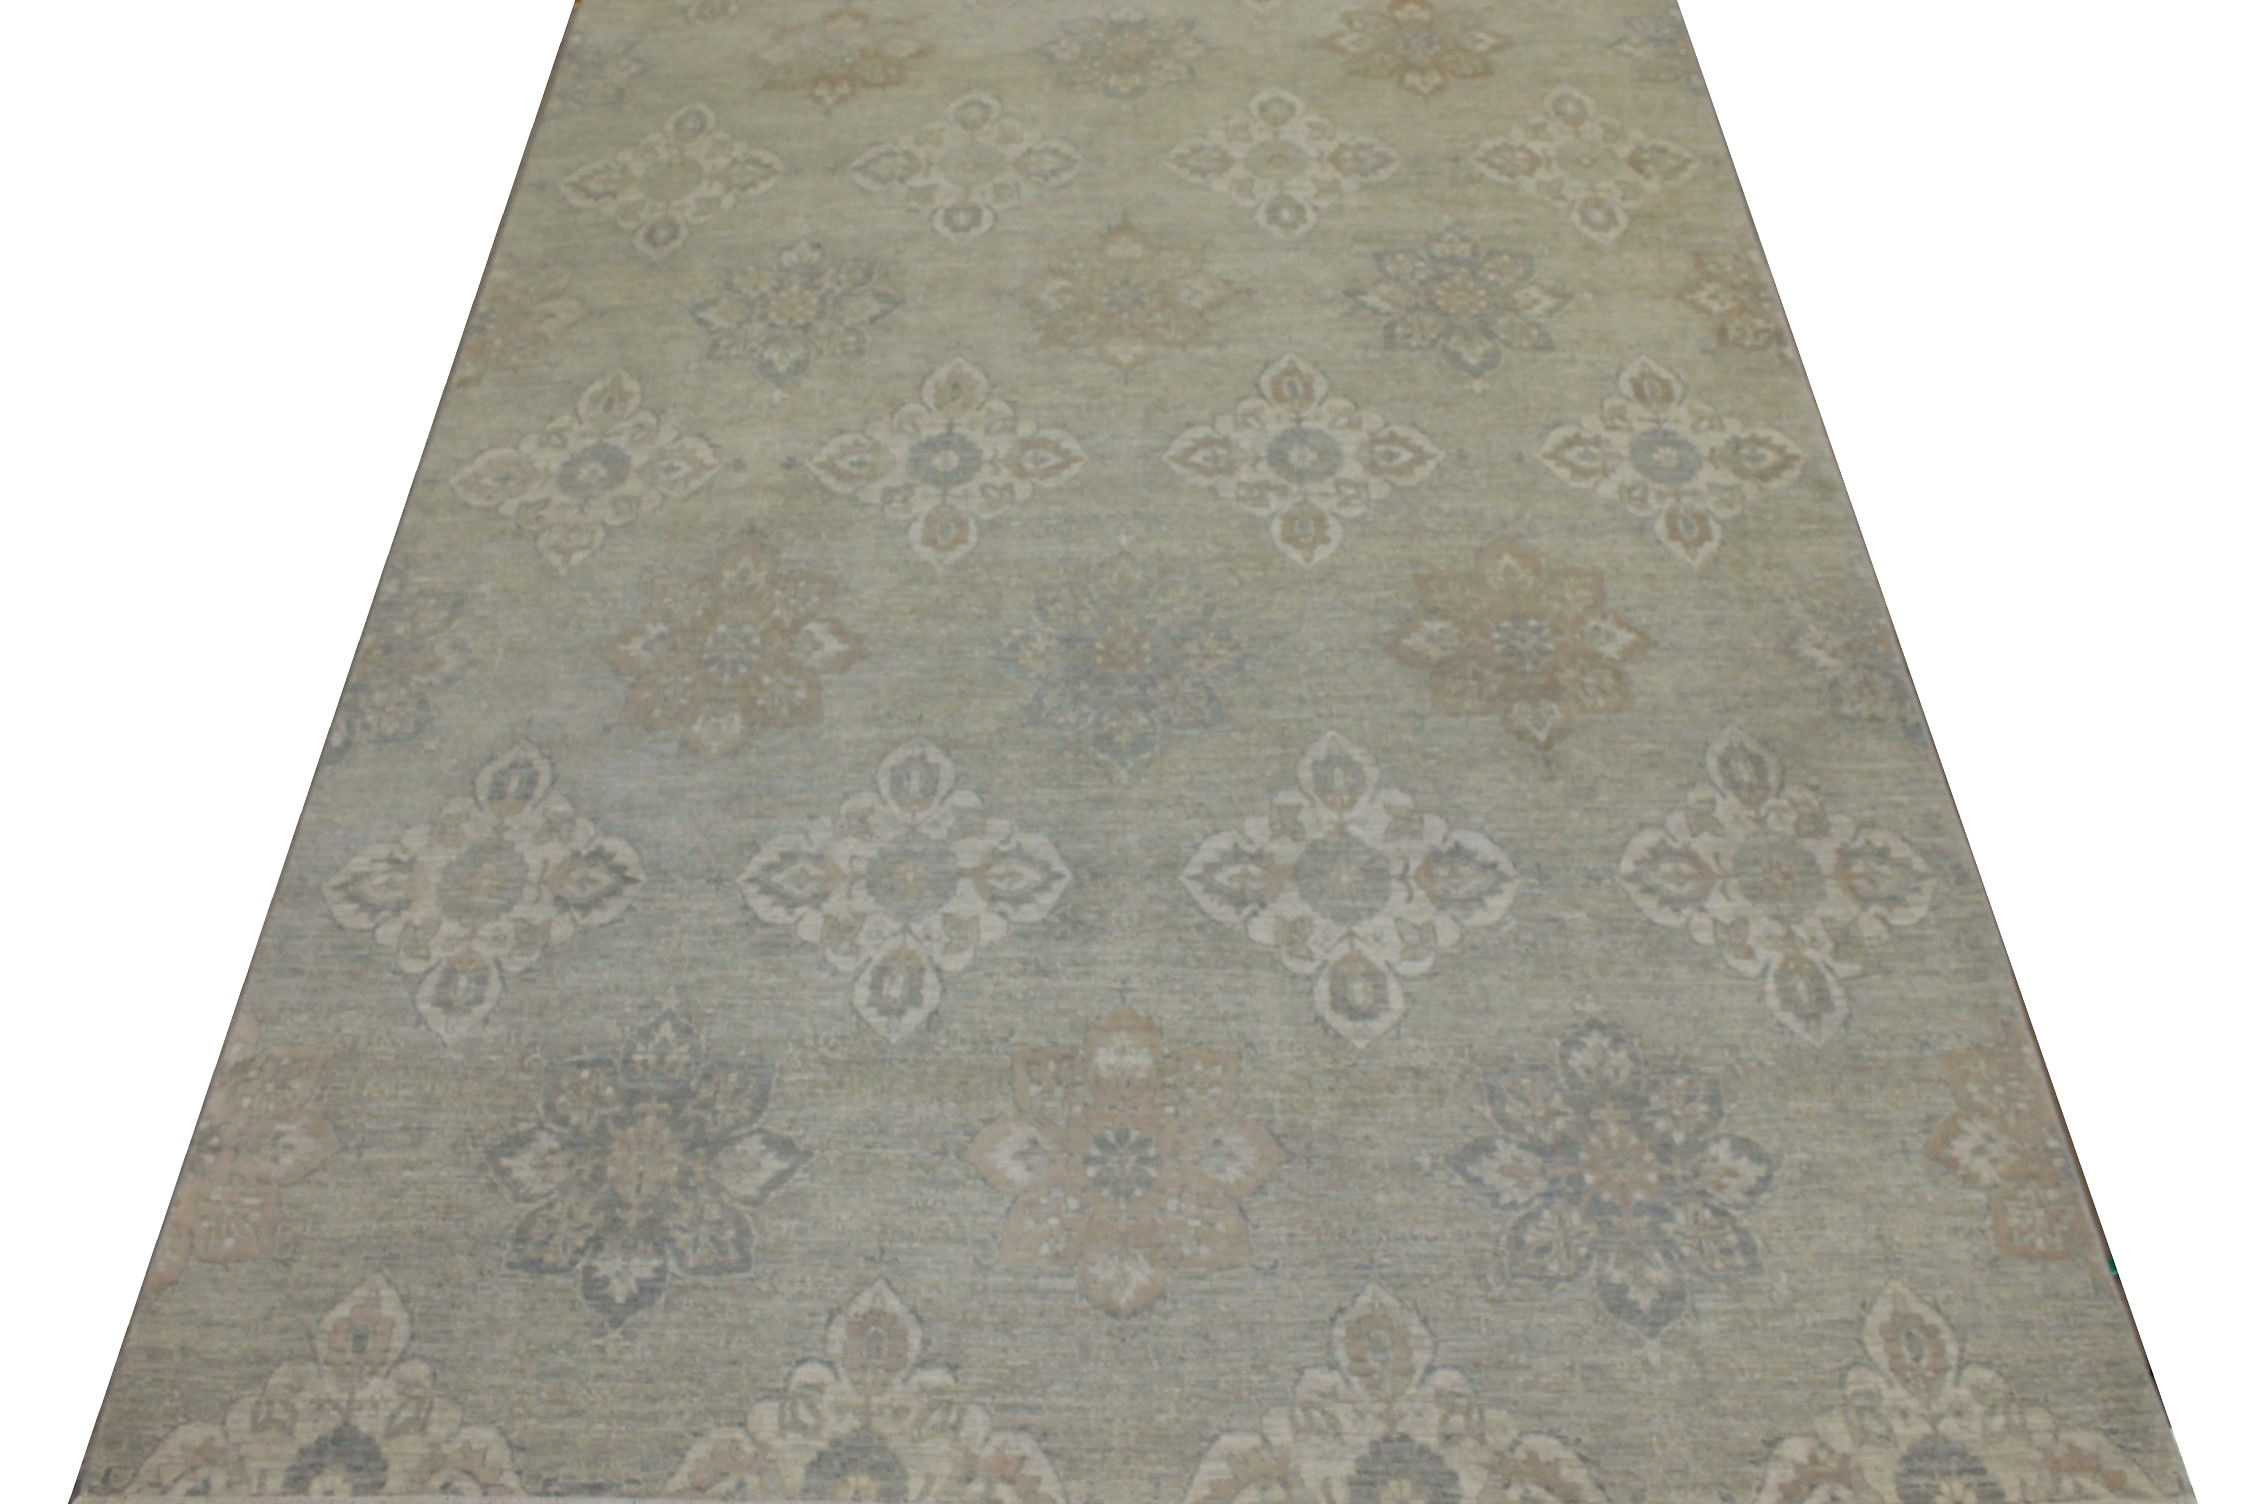 9x12 Peshawar Hand Knotted Wool Area Rug - MR18064